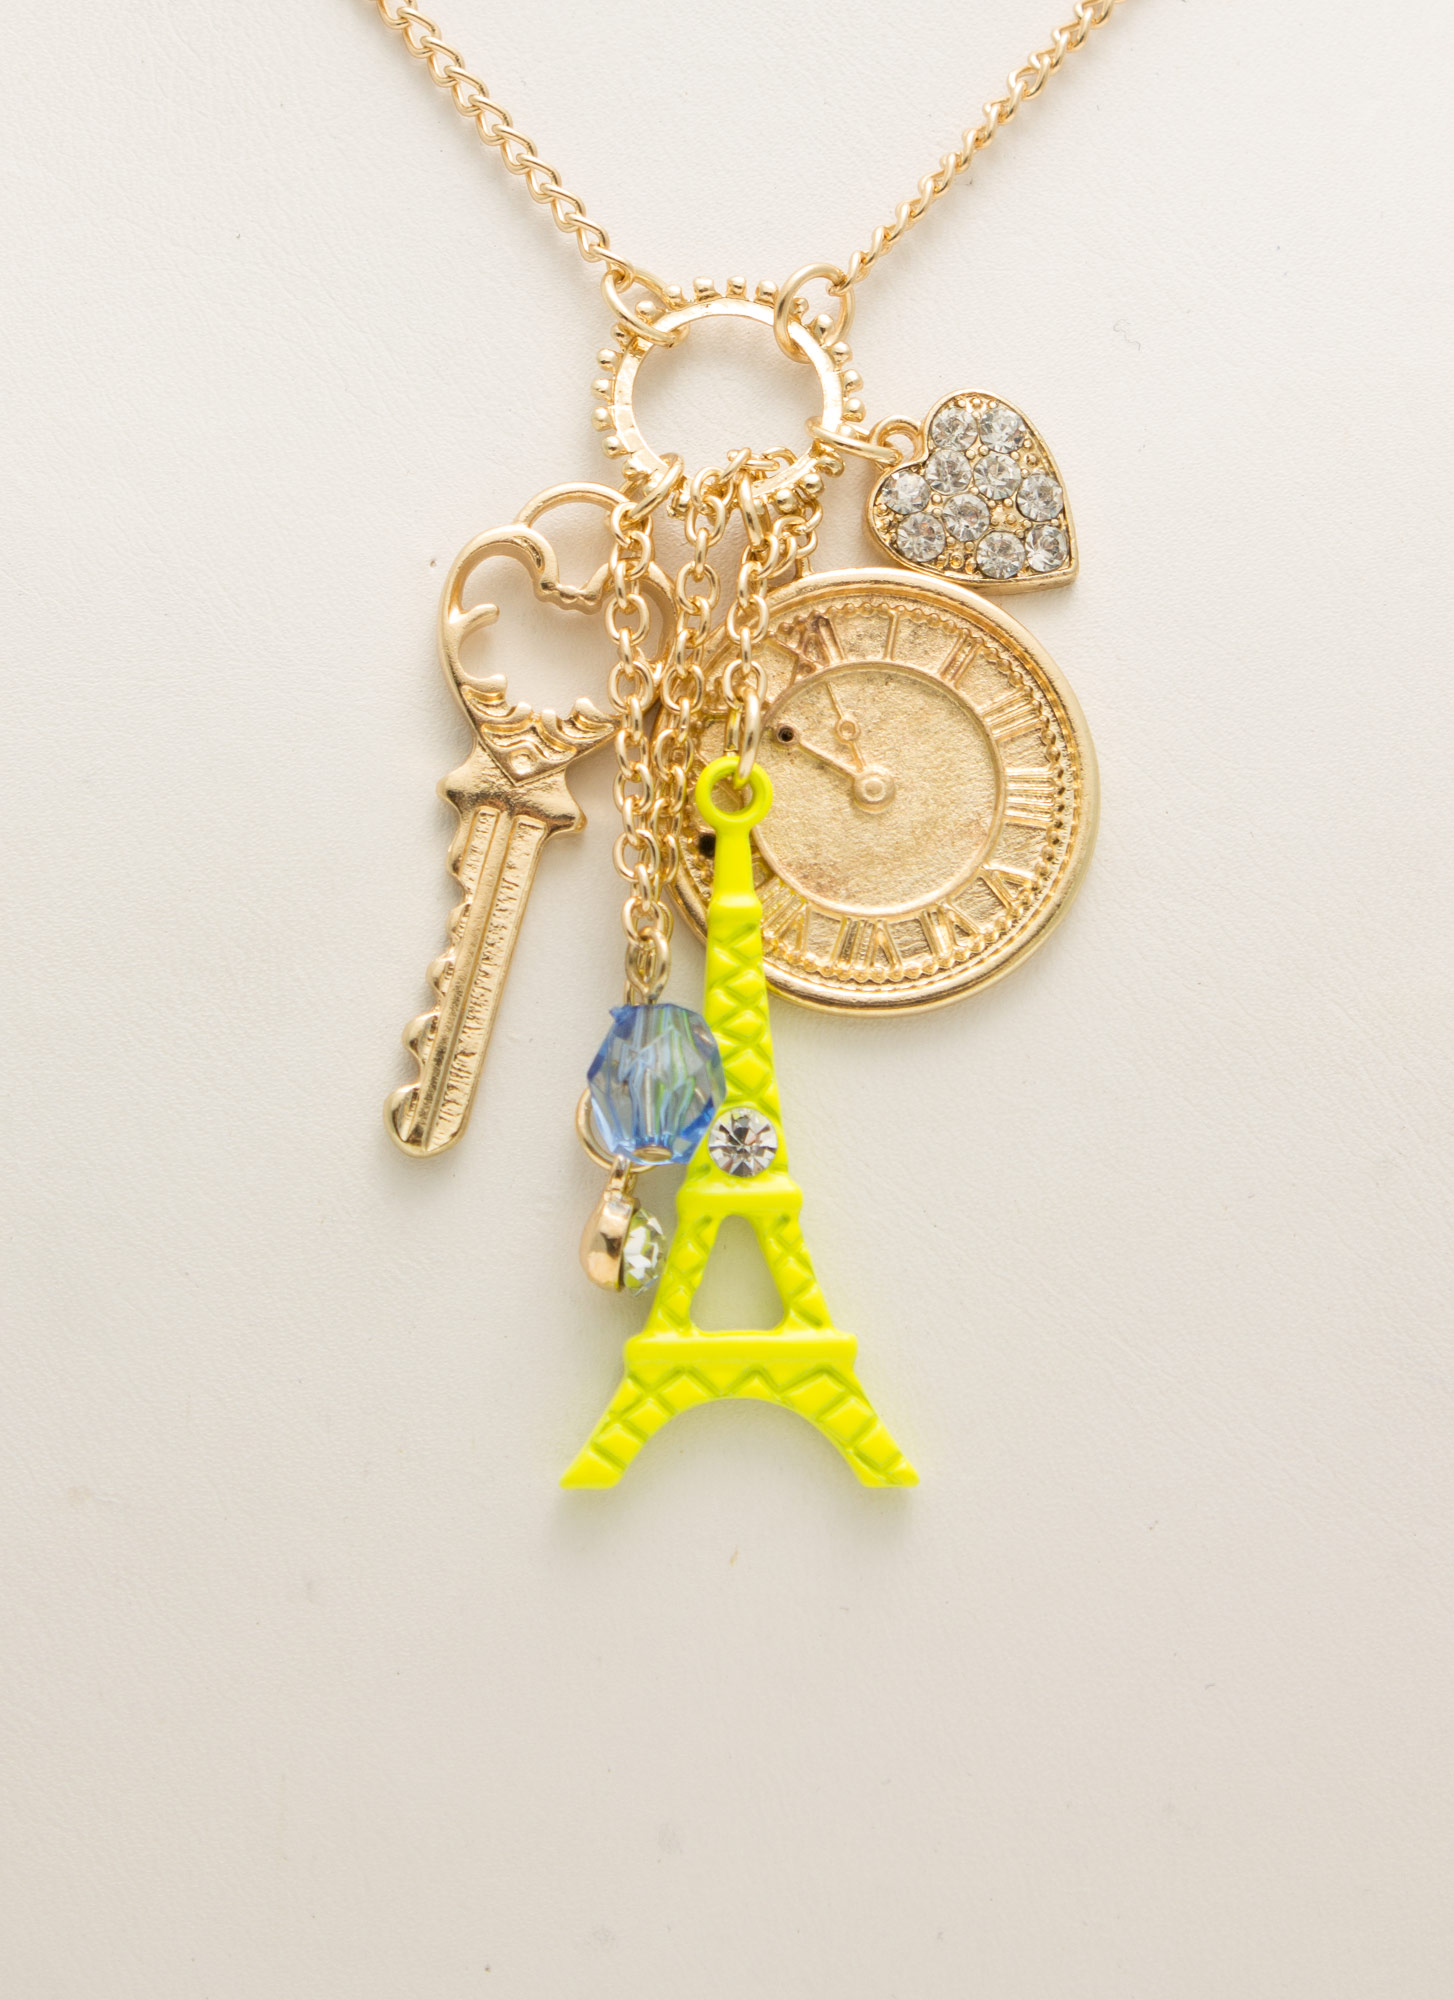 Paris Is 4 Lovers Charm Necklace GOLDNYLLW